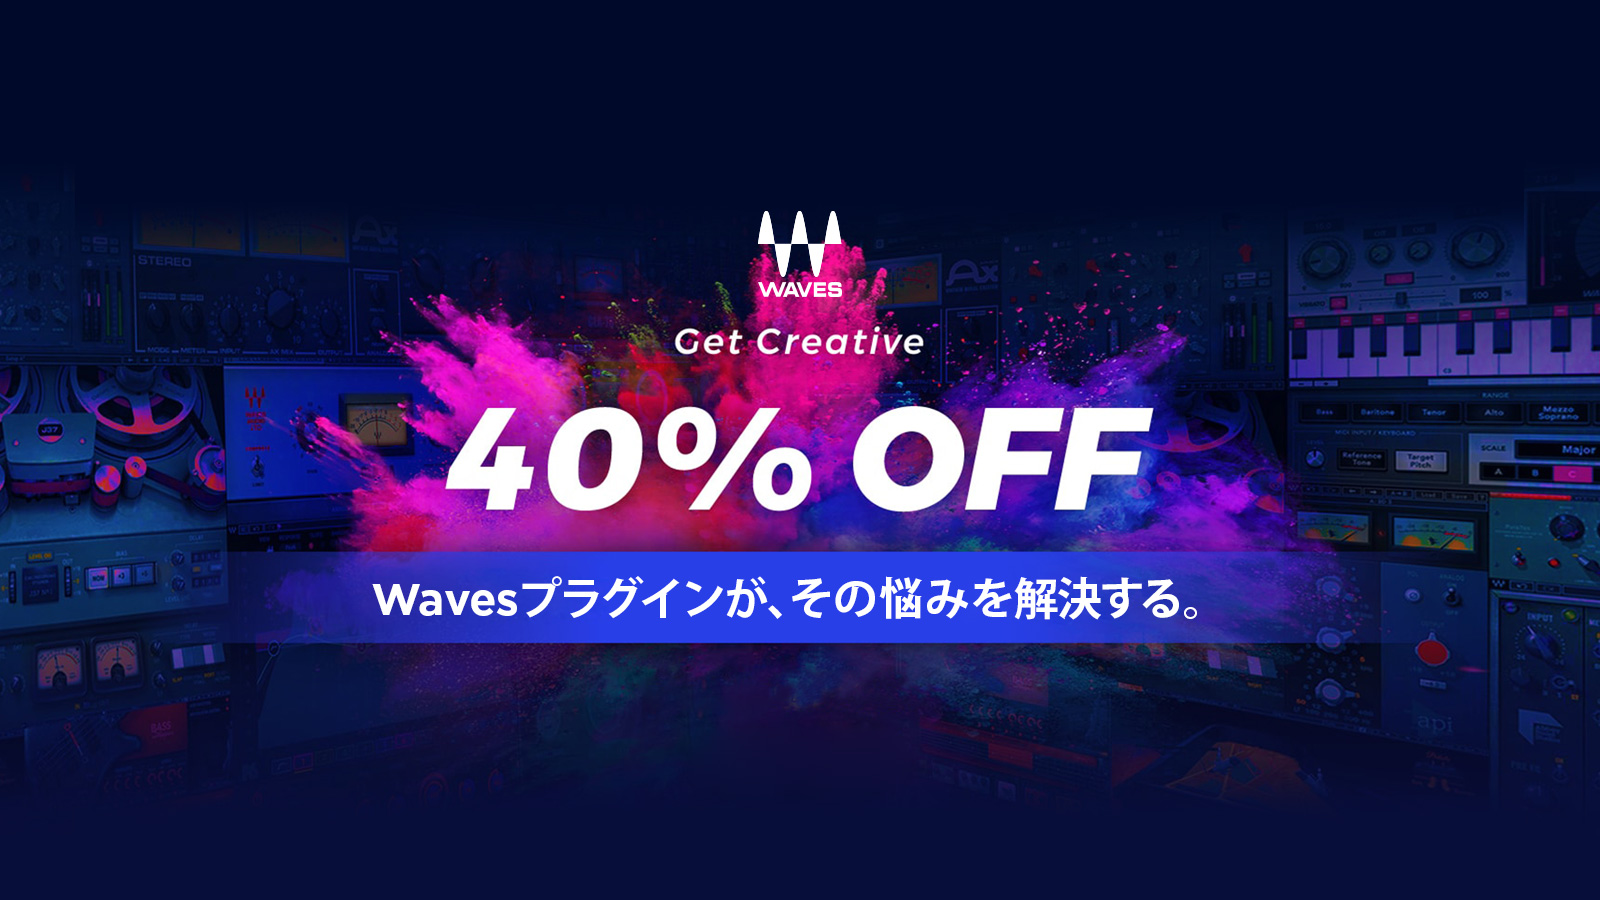 Waves Get Creative Sale!